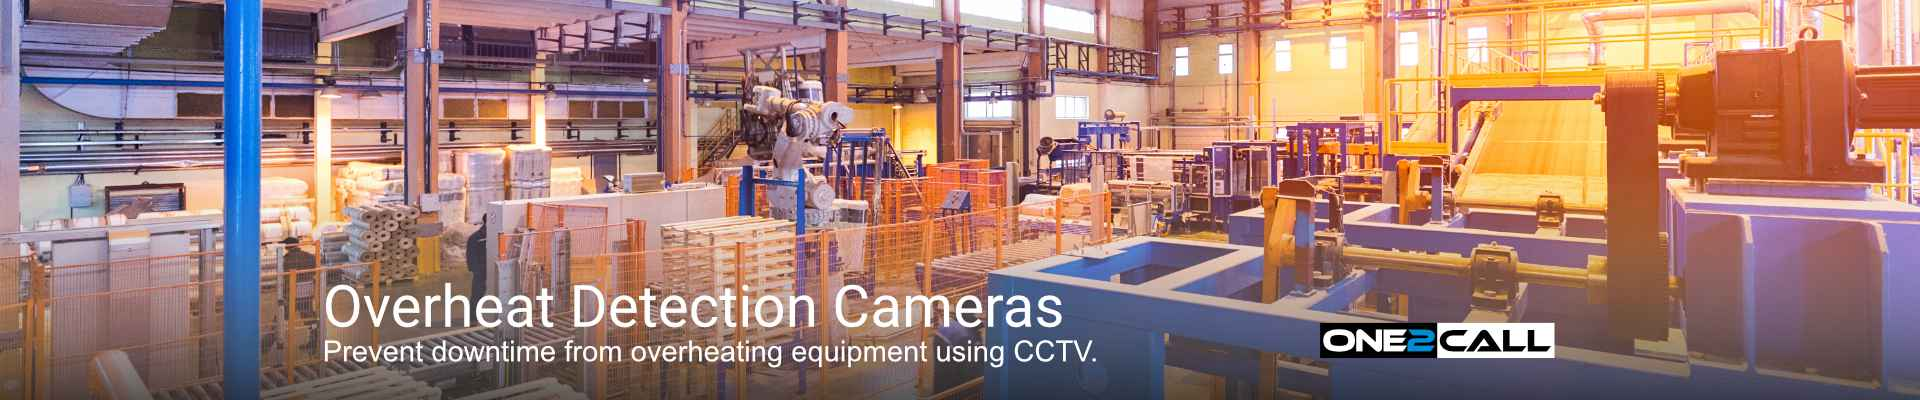 Overheat Detection Cameras - Prevent downtime from overheating equipment using CCTV.